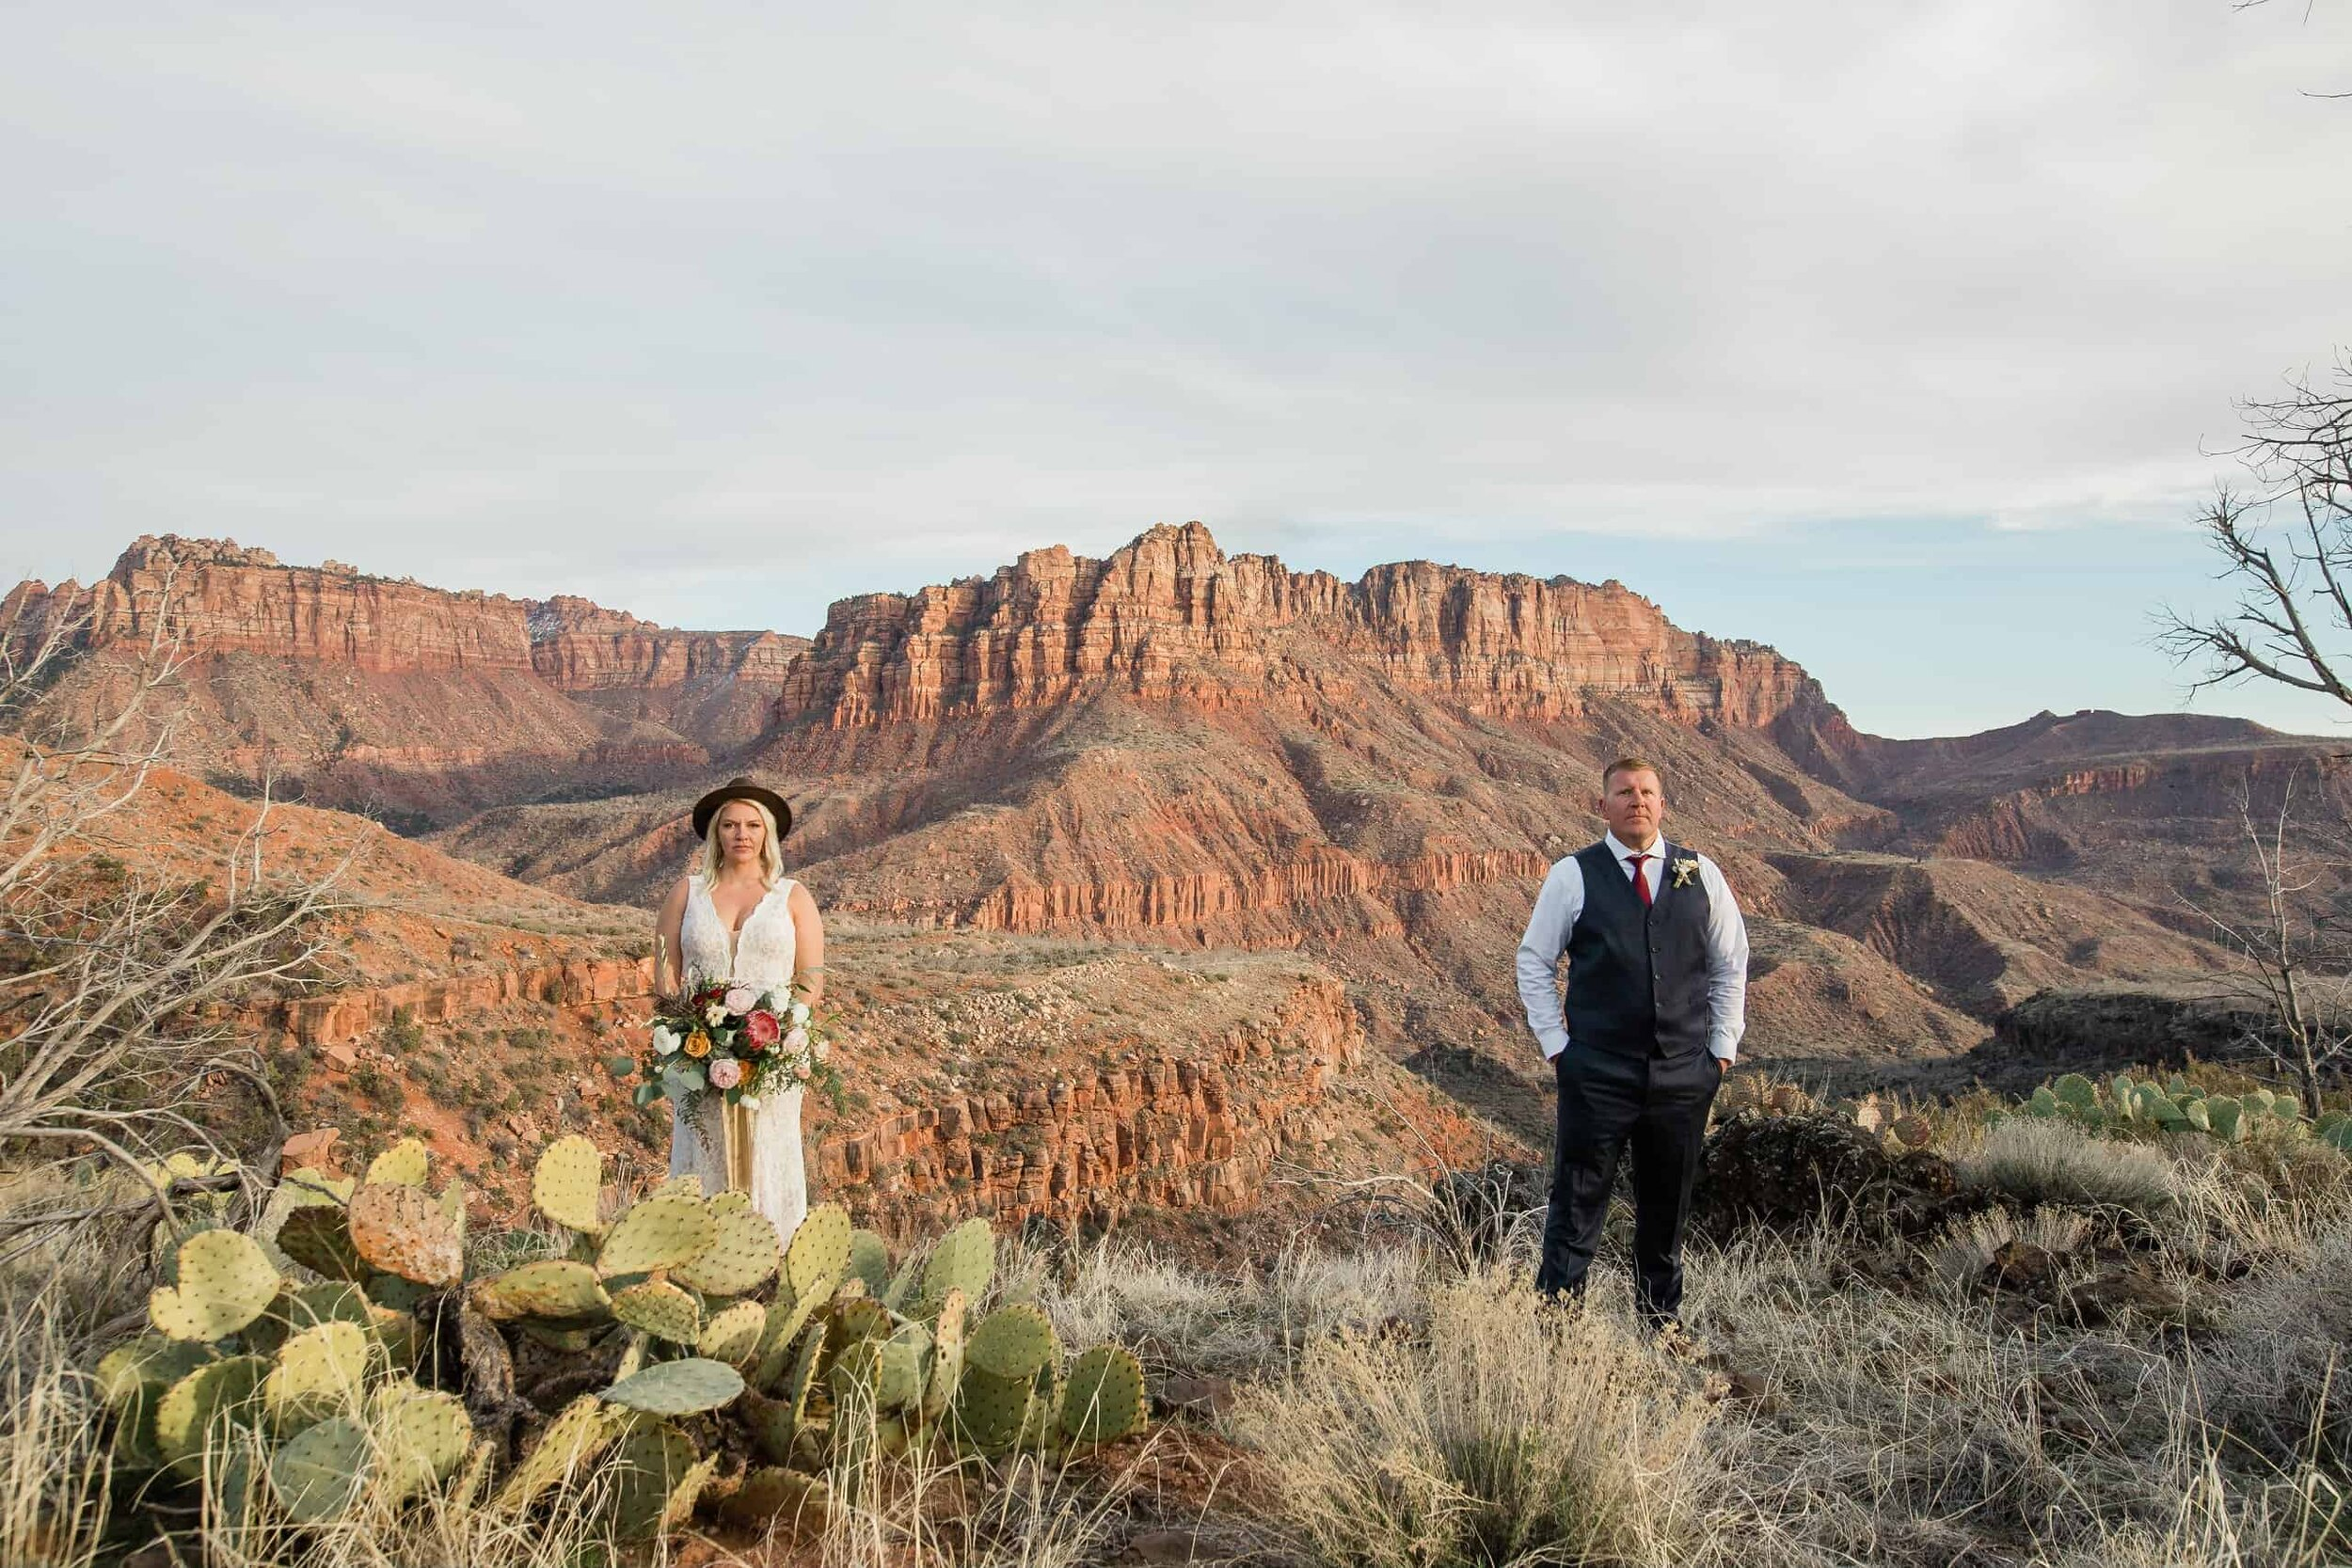 Bride and groom snuggle for wedding portrait in Zion National Park